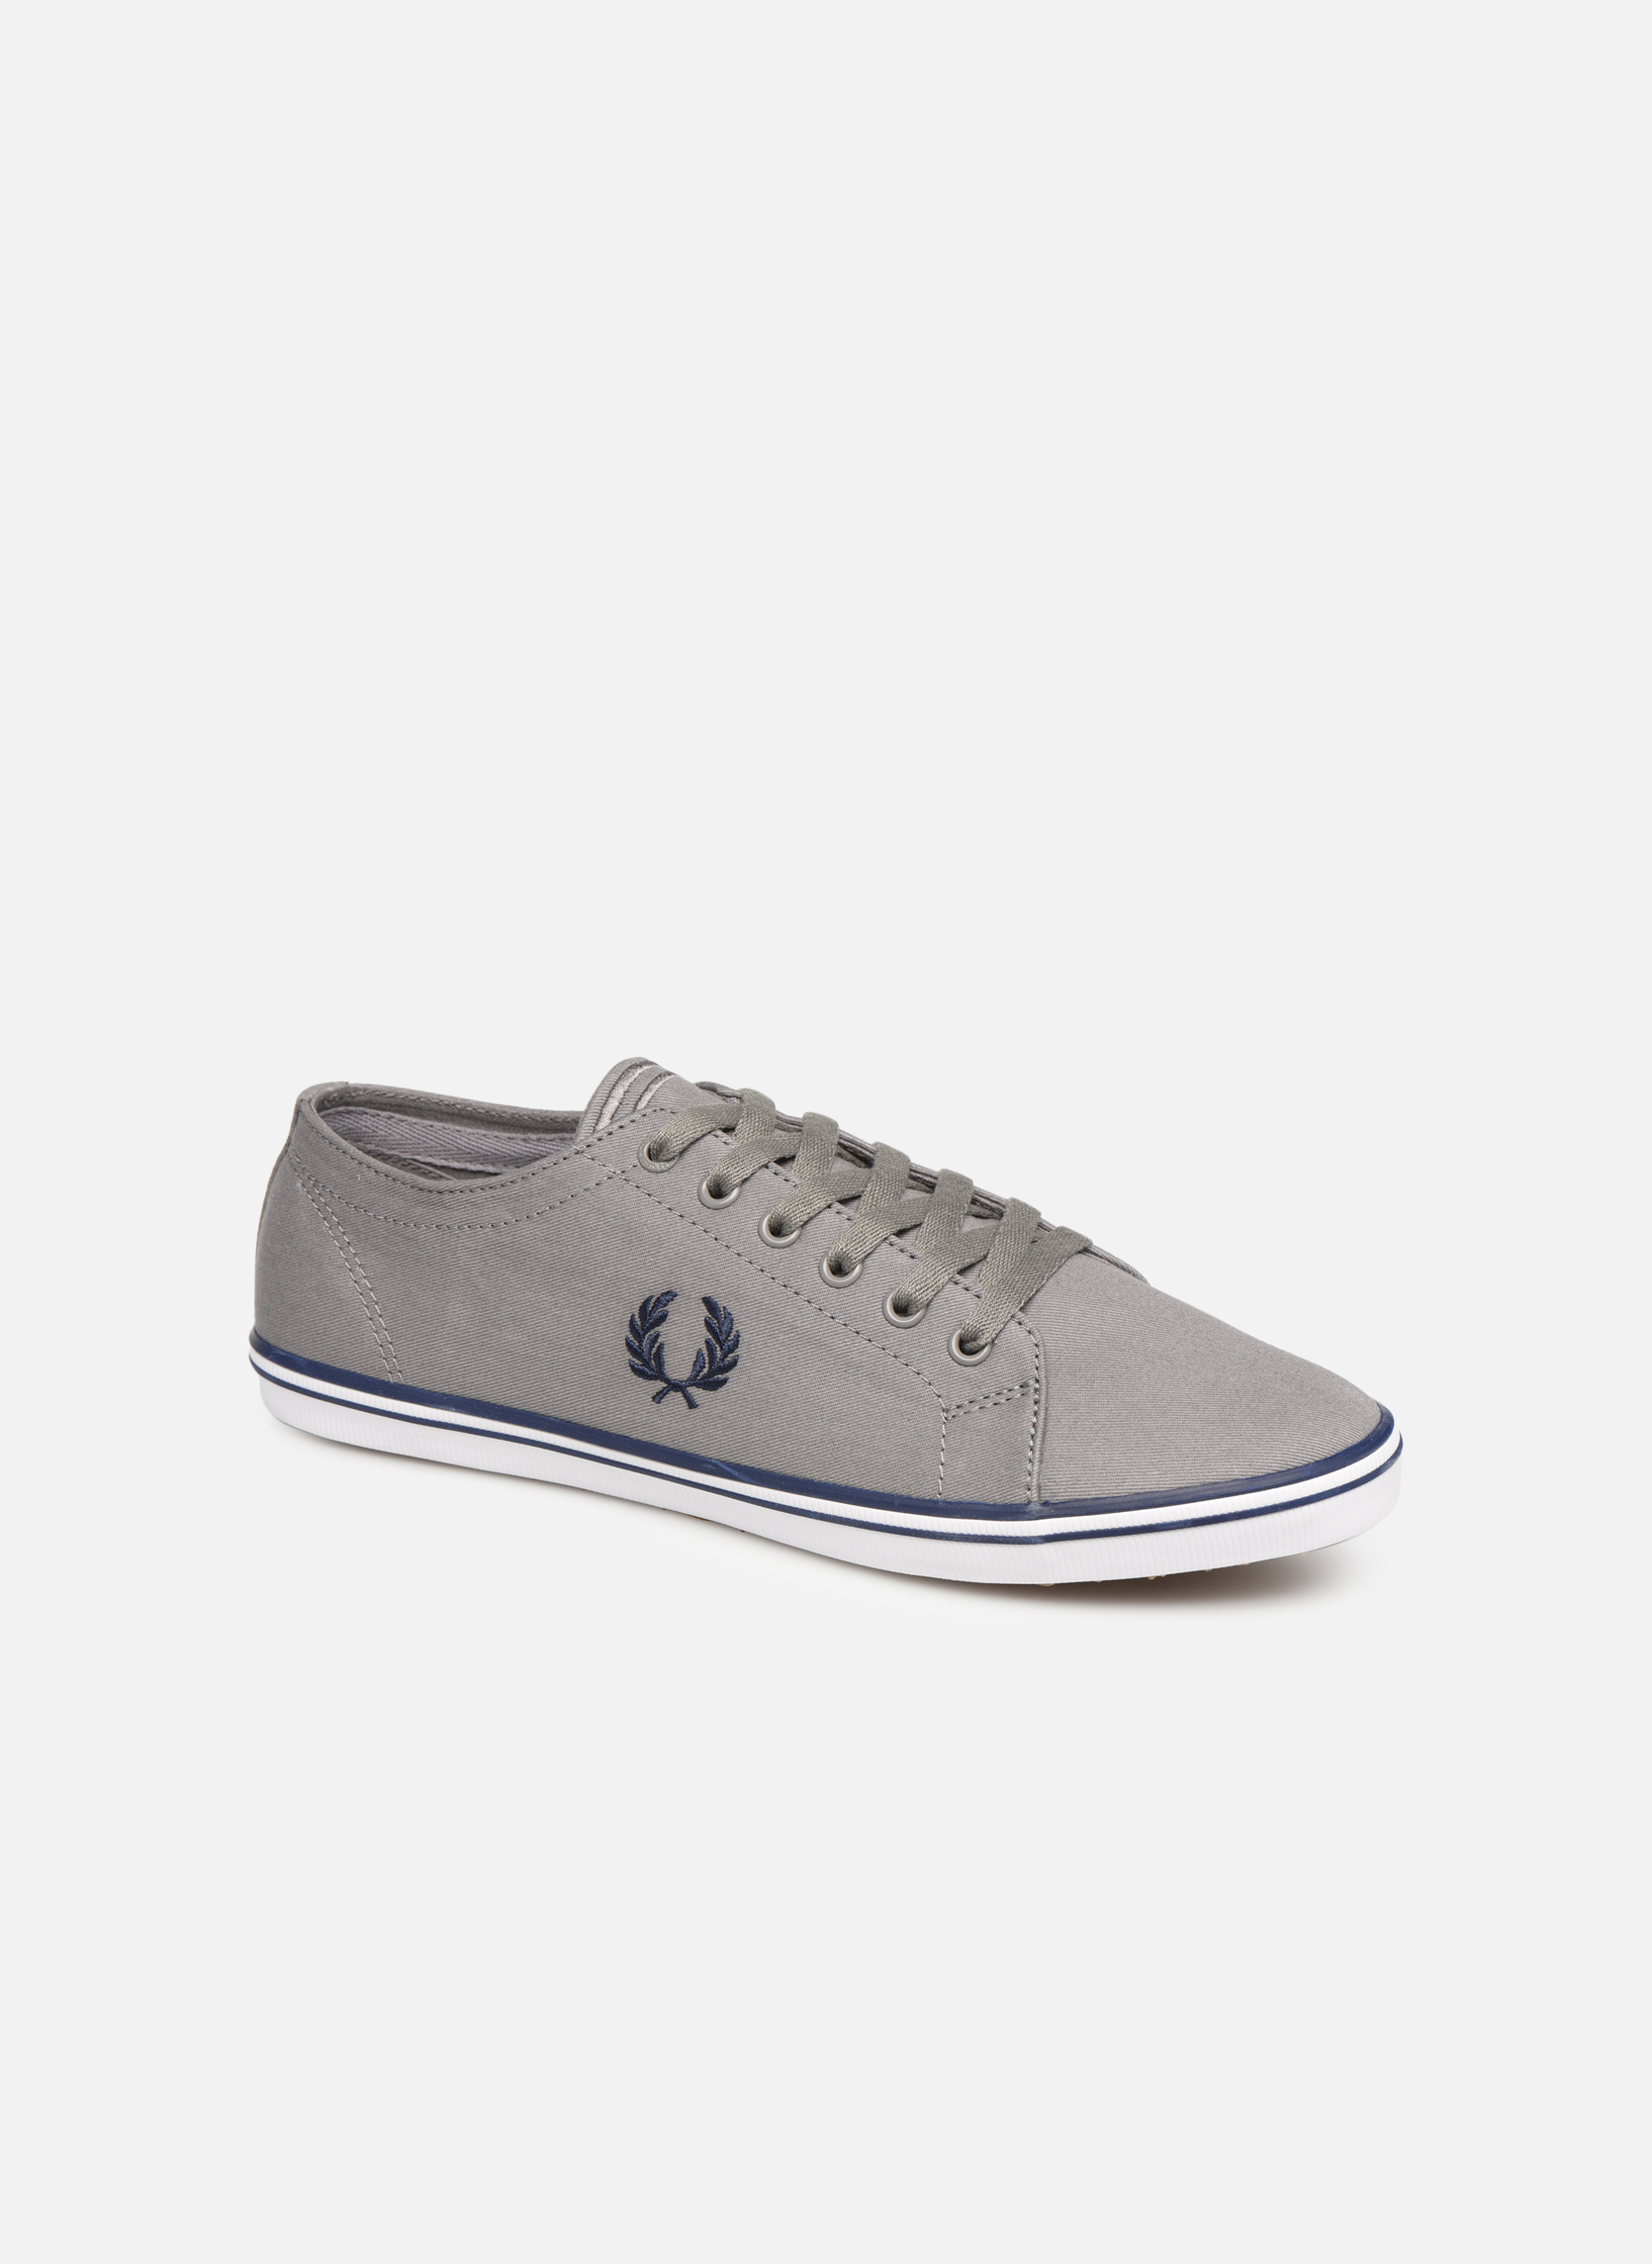 Sneakers Fred Perry Grijs